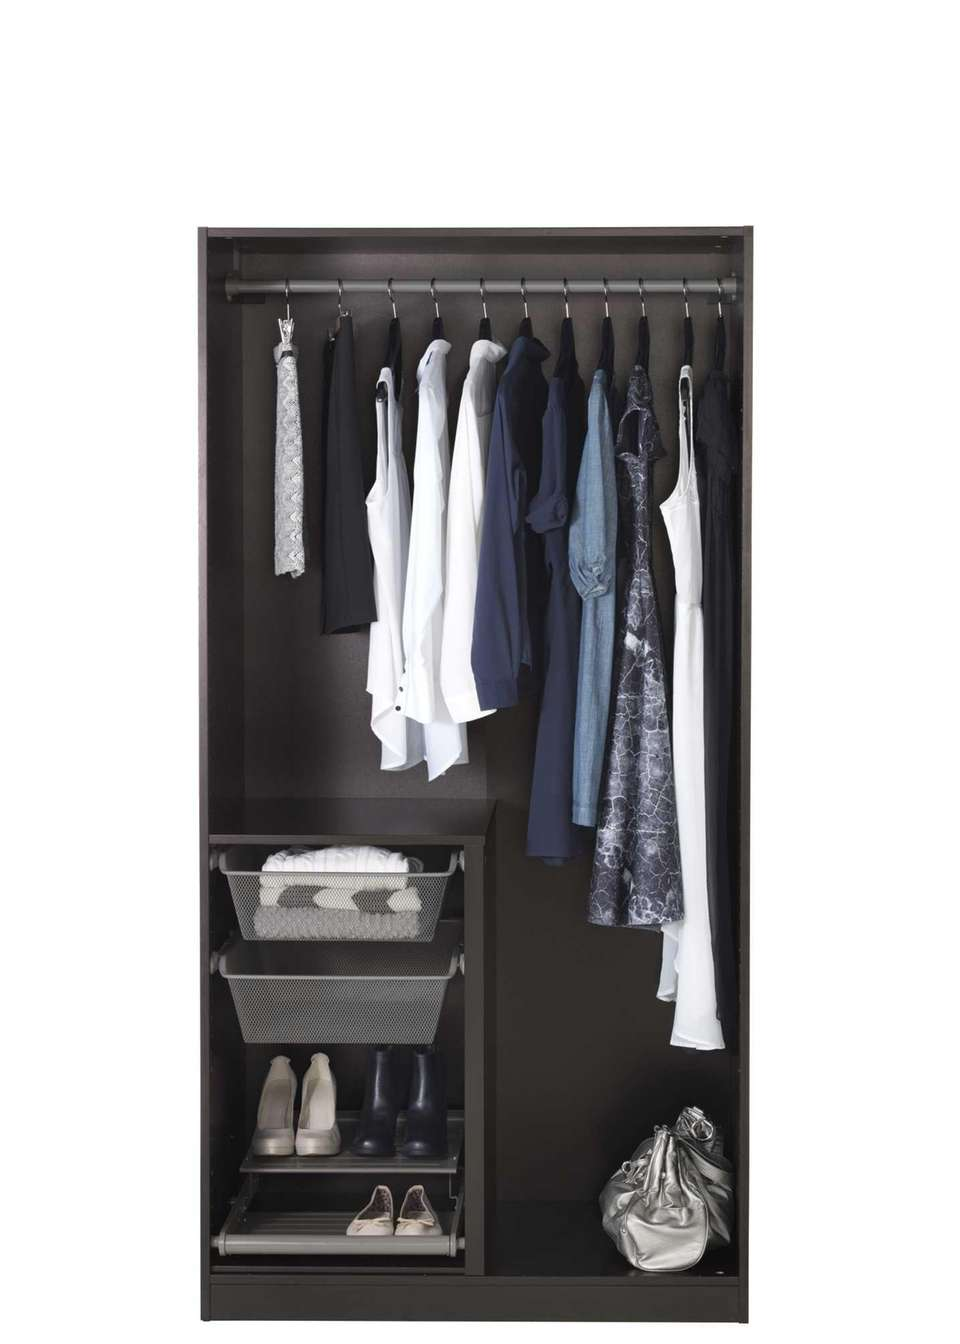 The Pax Wardrobe is a customizable wardrobe that